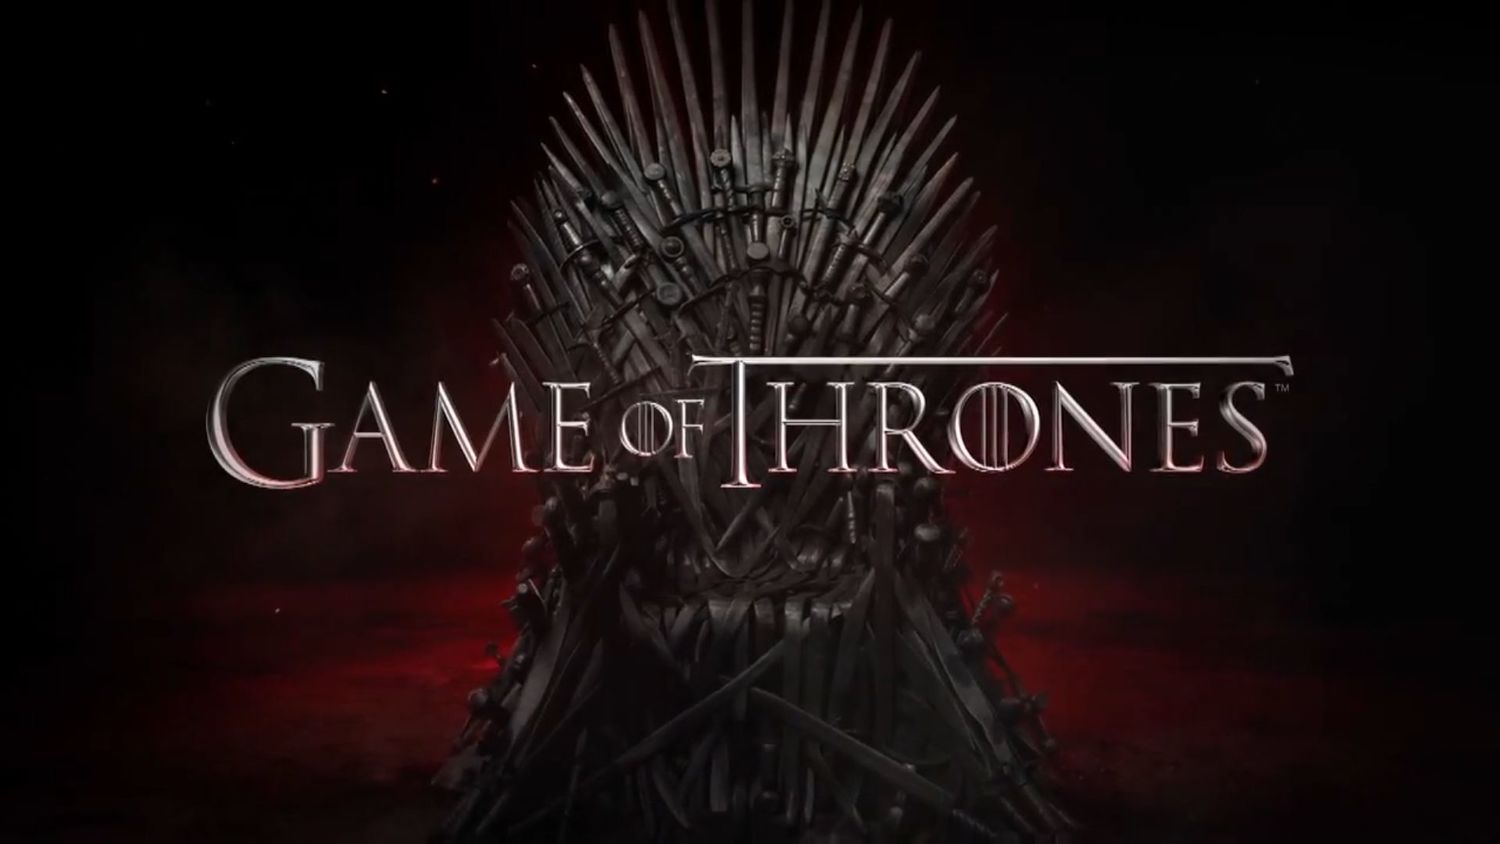 New GAME OF THRONES Featurette to Air on February 8th | Watchers.